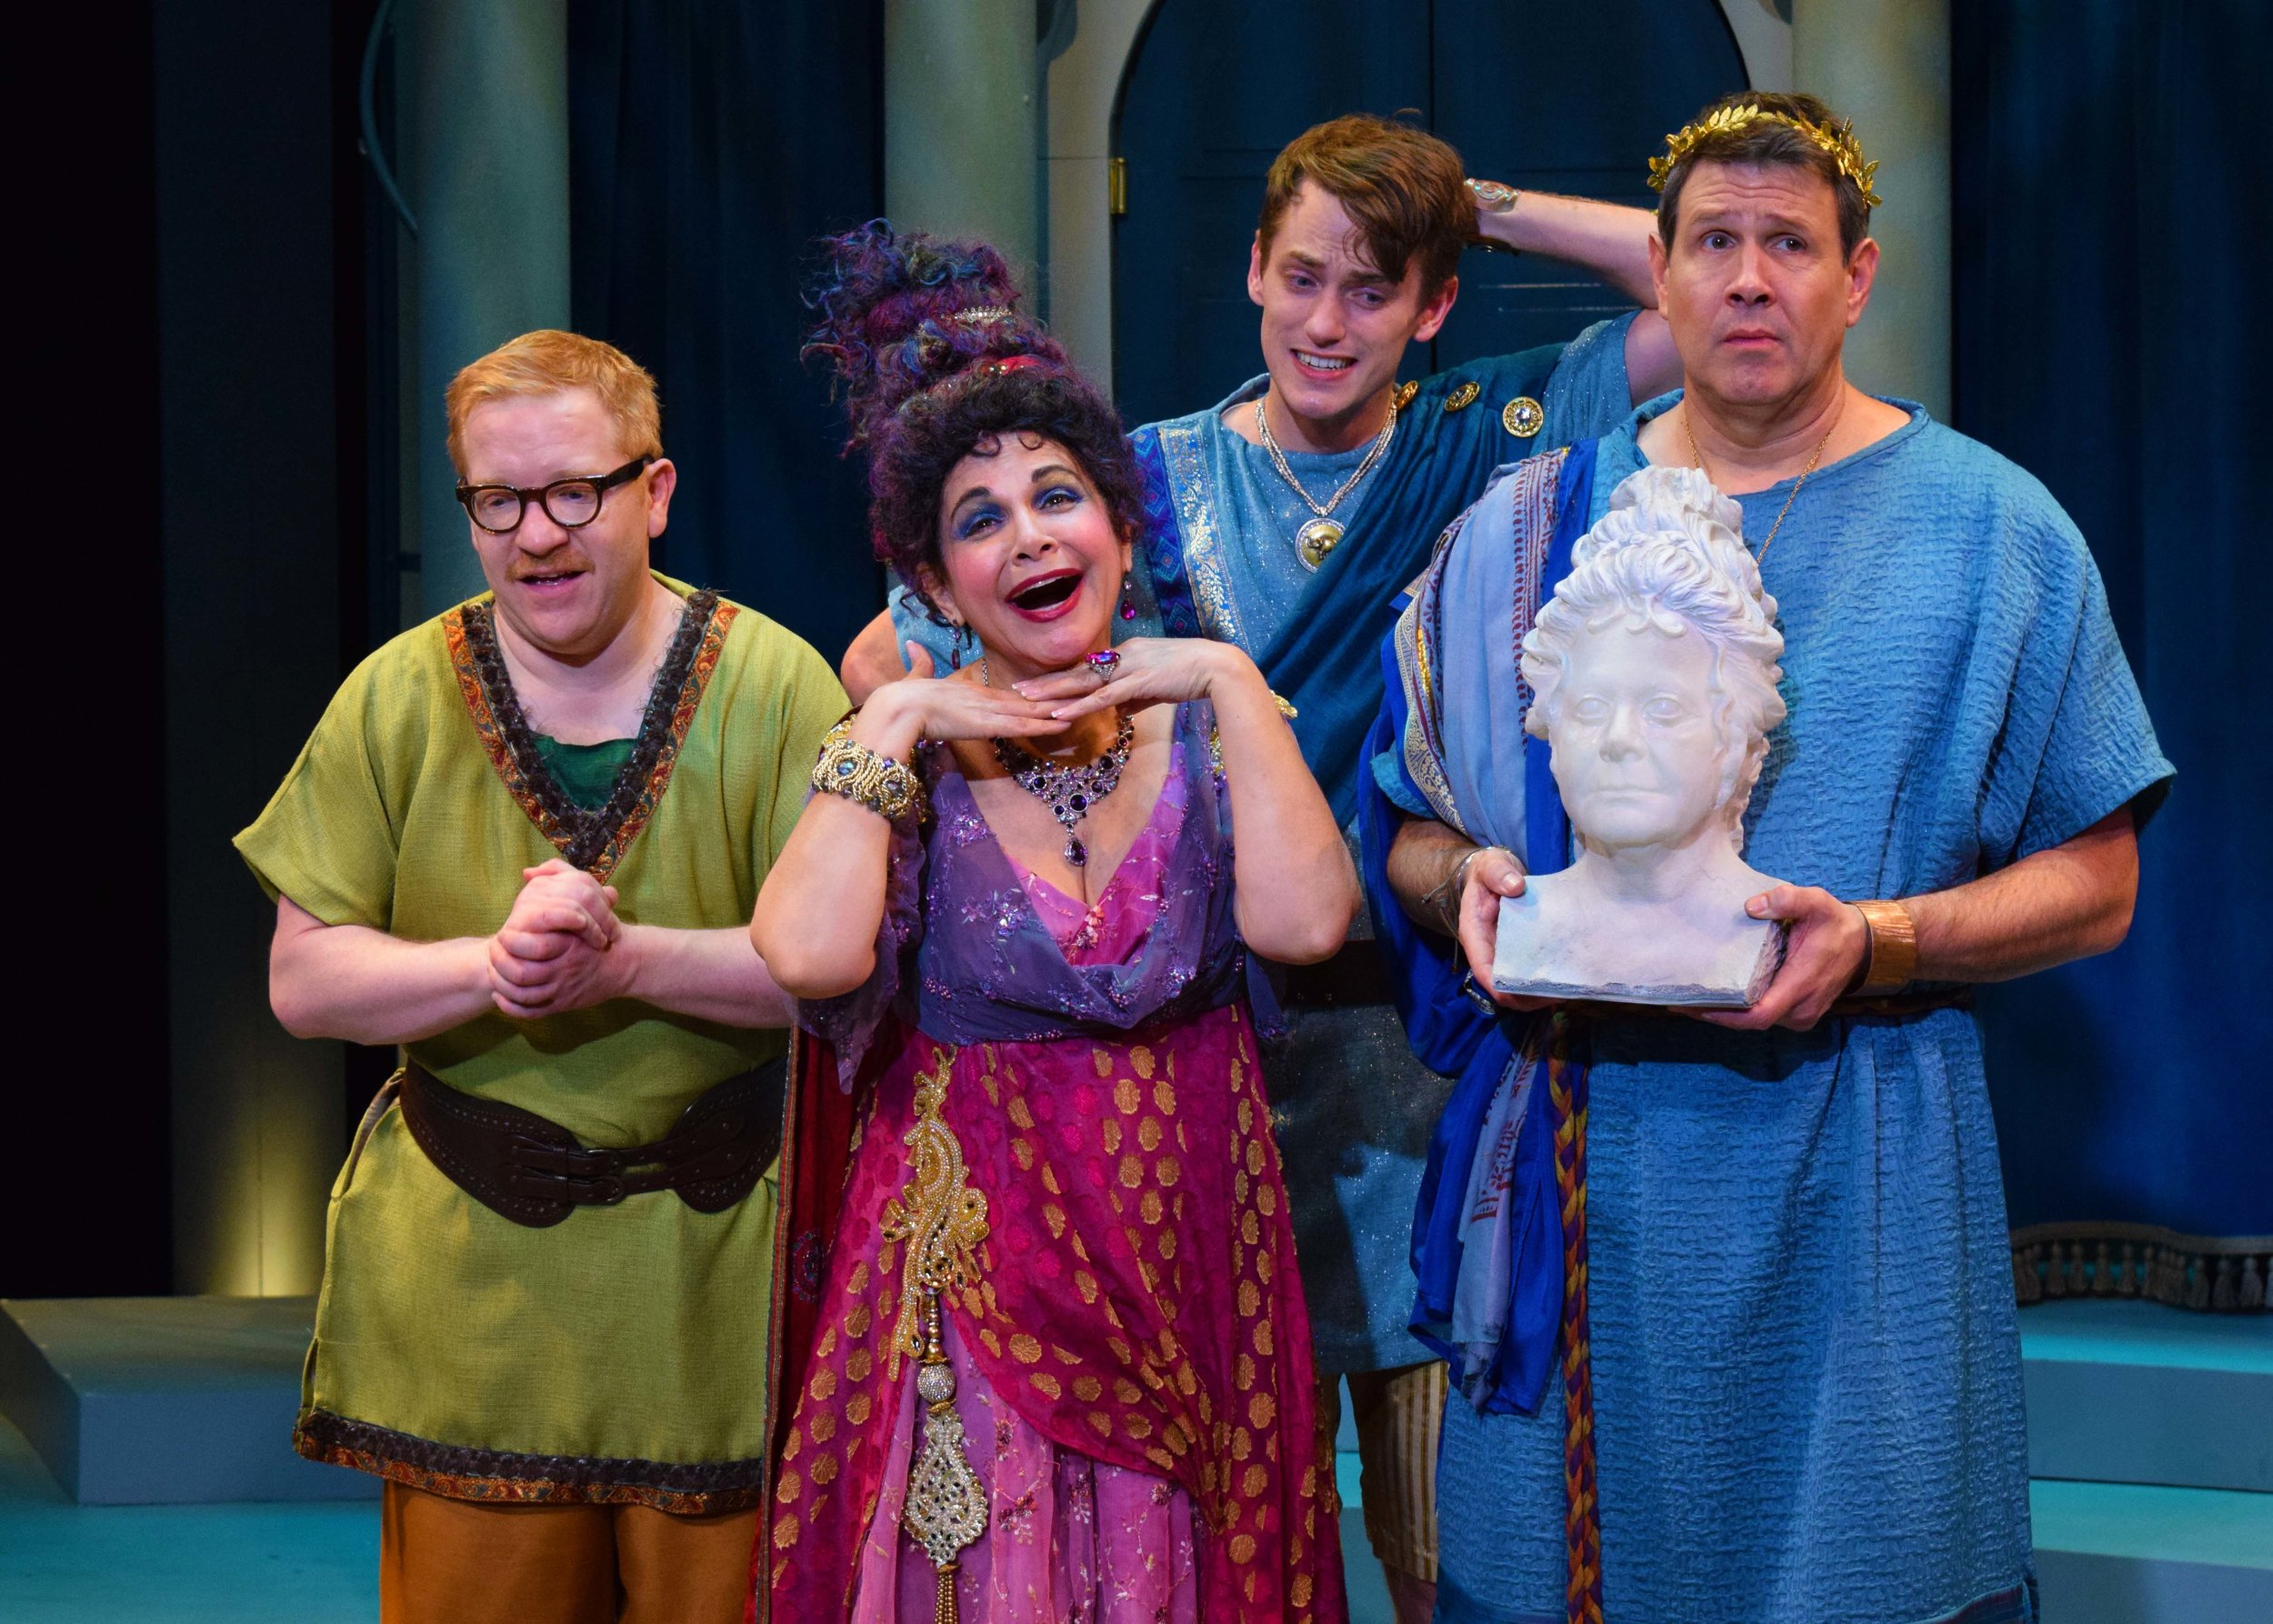 Hysterium (Ethan Cohn), Domina (Candi Milo), Hero (Michael Thomas Grant), and Senex (Kevin Symons) in A Funny Thing Happened On The Way To The Forum at the Garry Marshall Theatre. Photo by Chelsea Sutton.